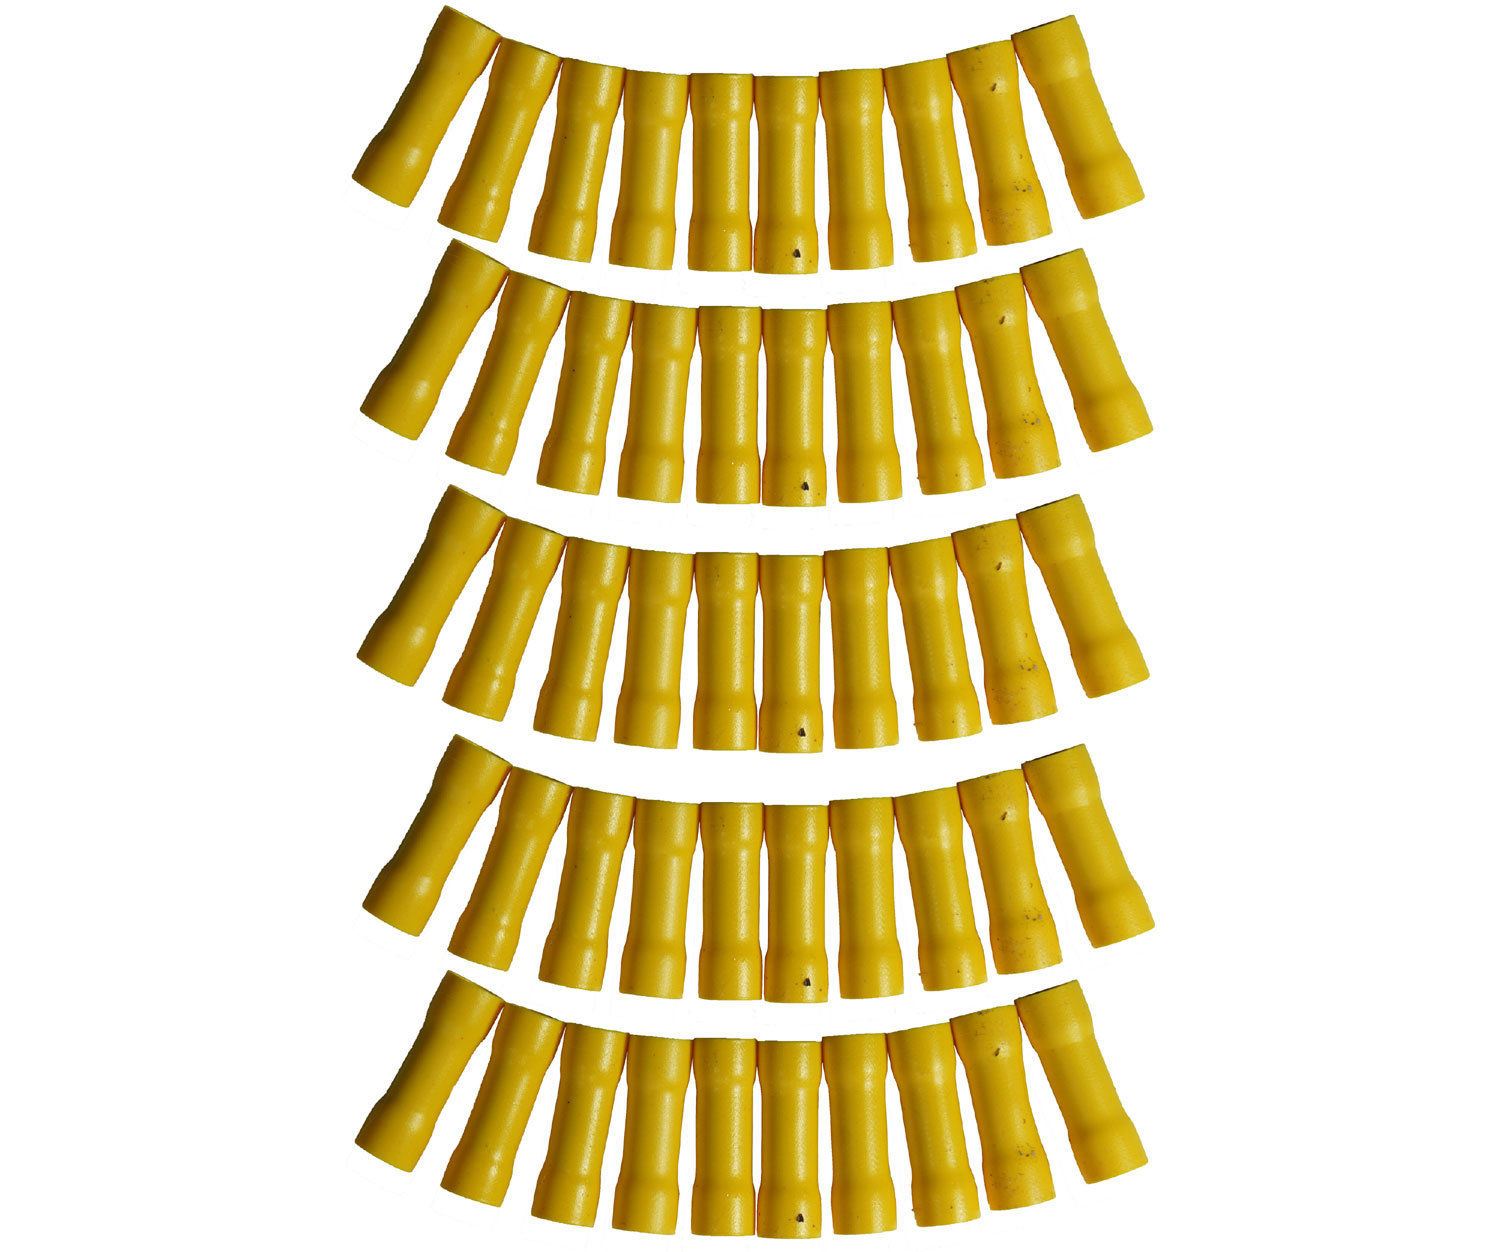 Harmony Audio HA-BC1012 Car Stereo Butt Connectors 10 to 12 Gauge Wire Yellow Color